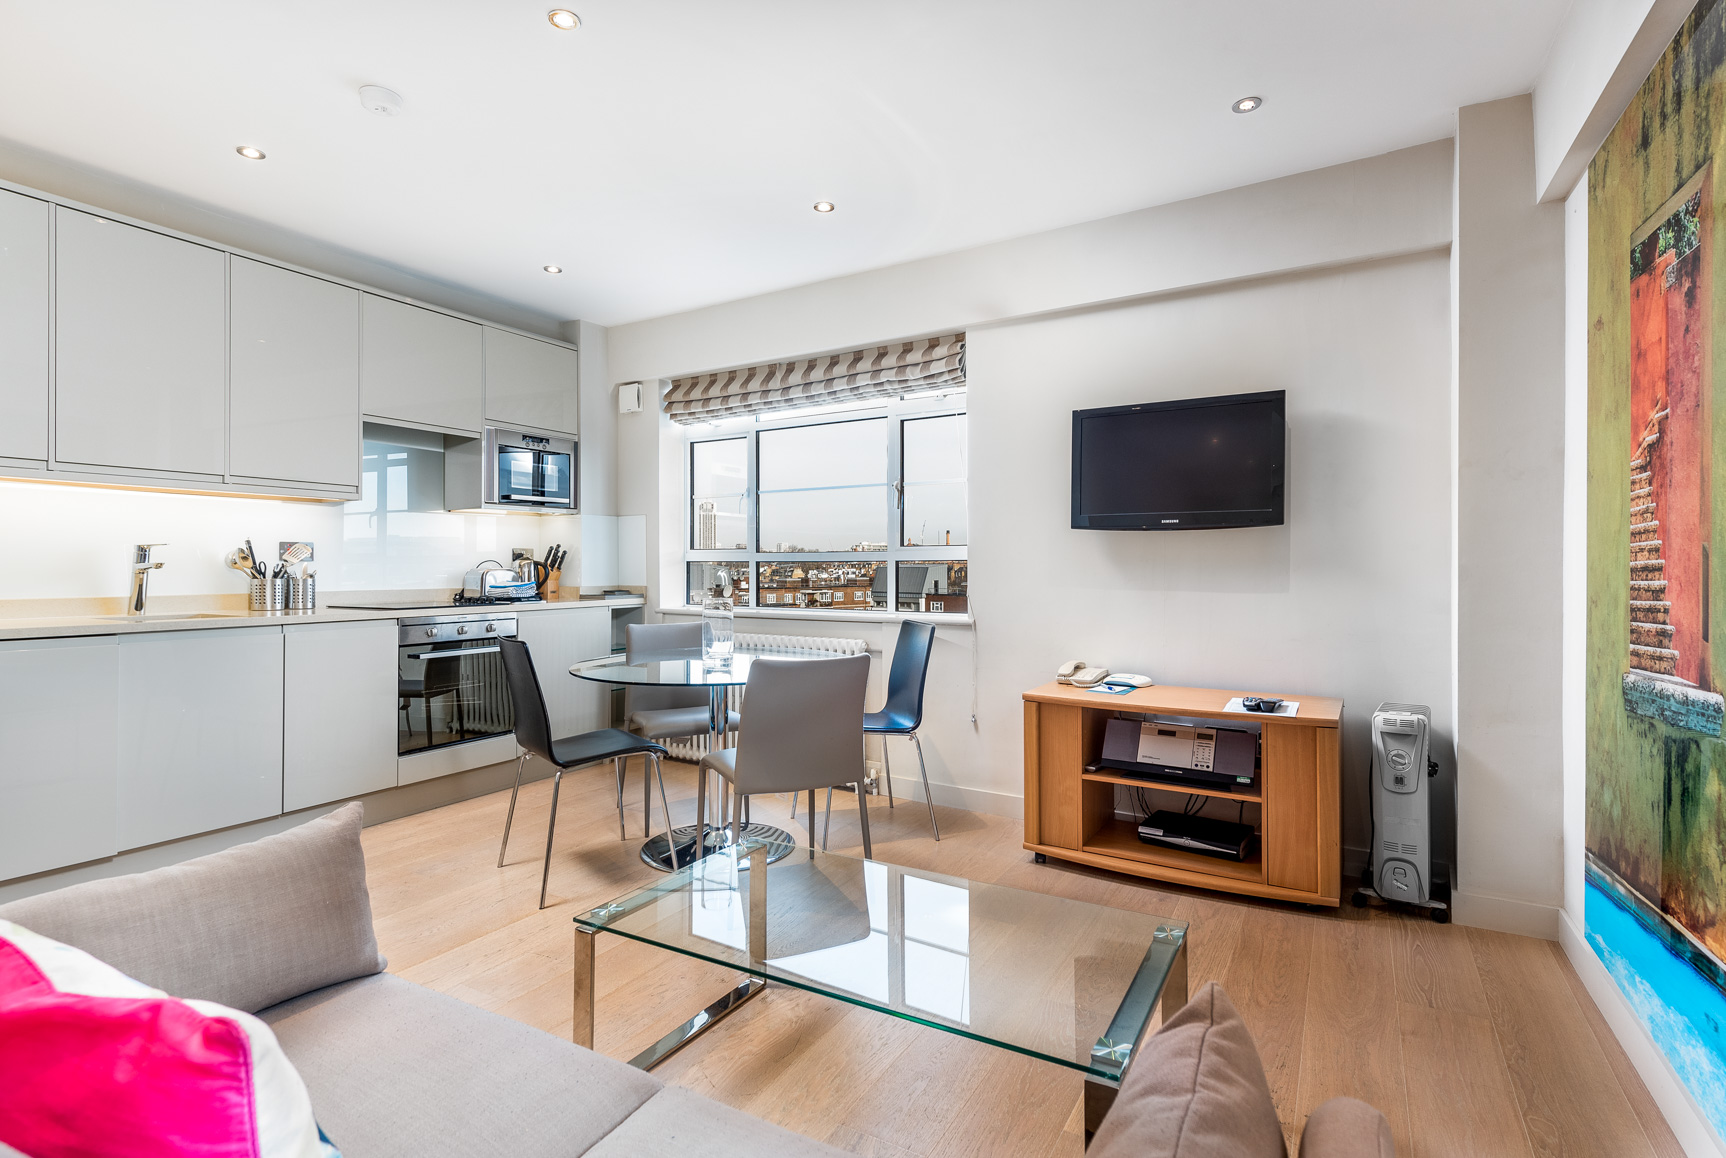 Open plan space at Nell Gwynn House Accommodation, Chelsea, London - Citybase Apartments